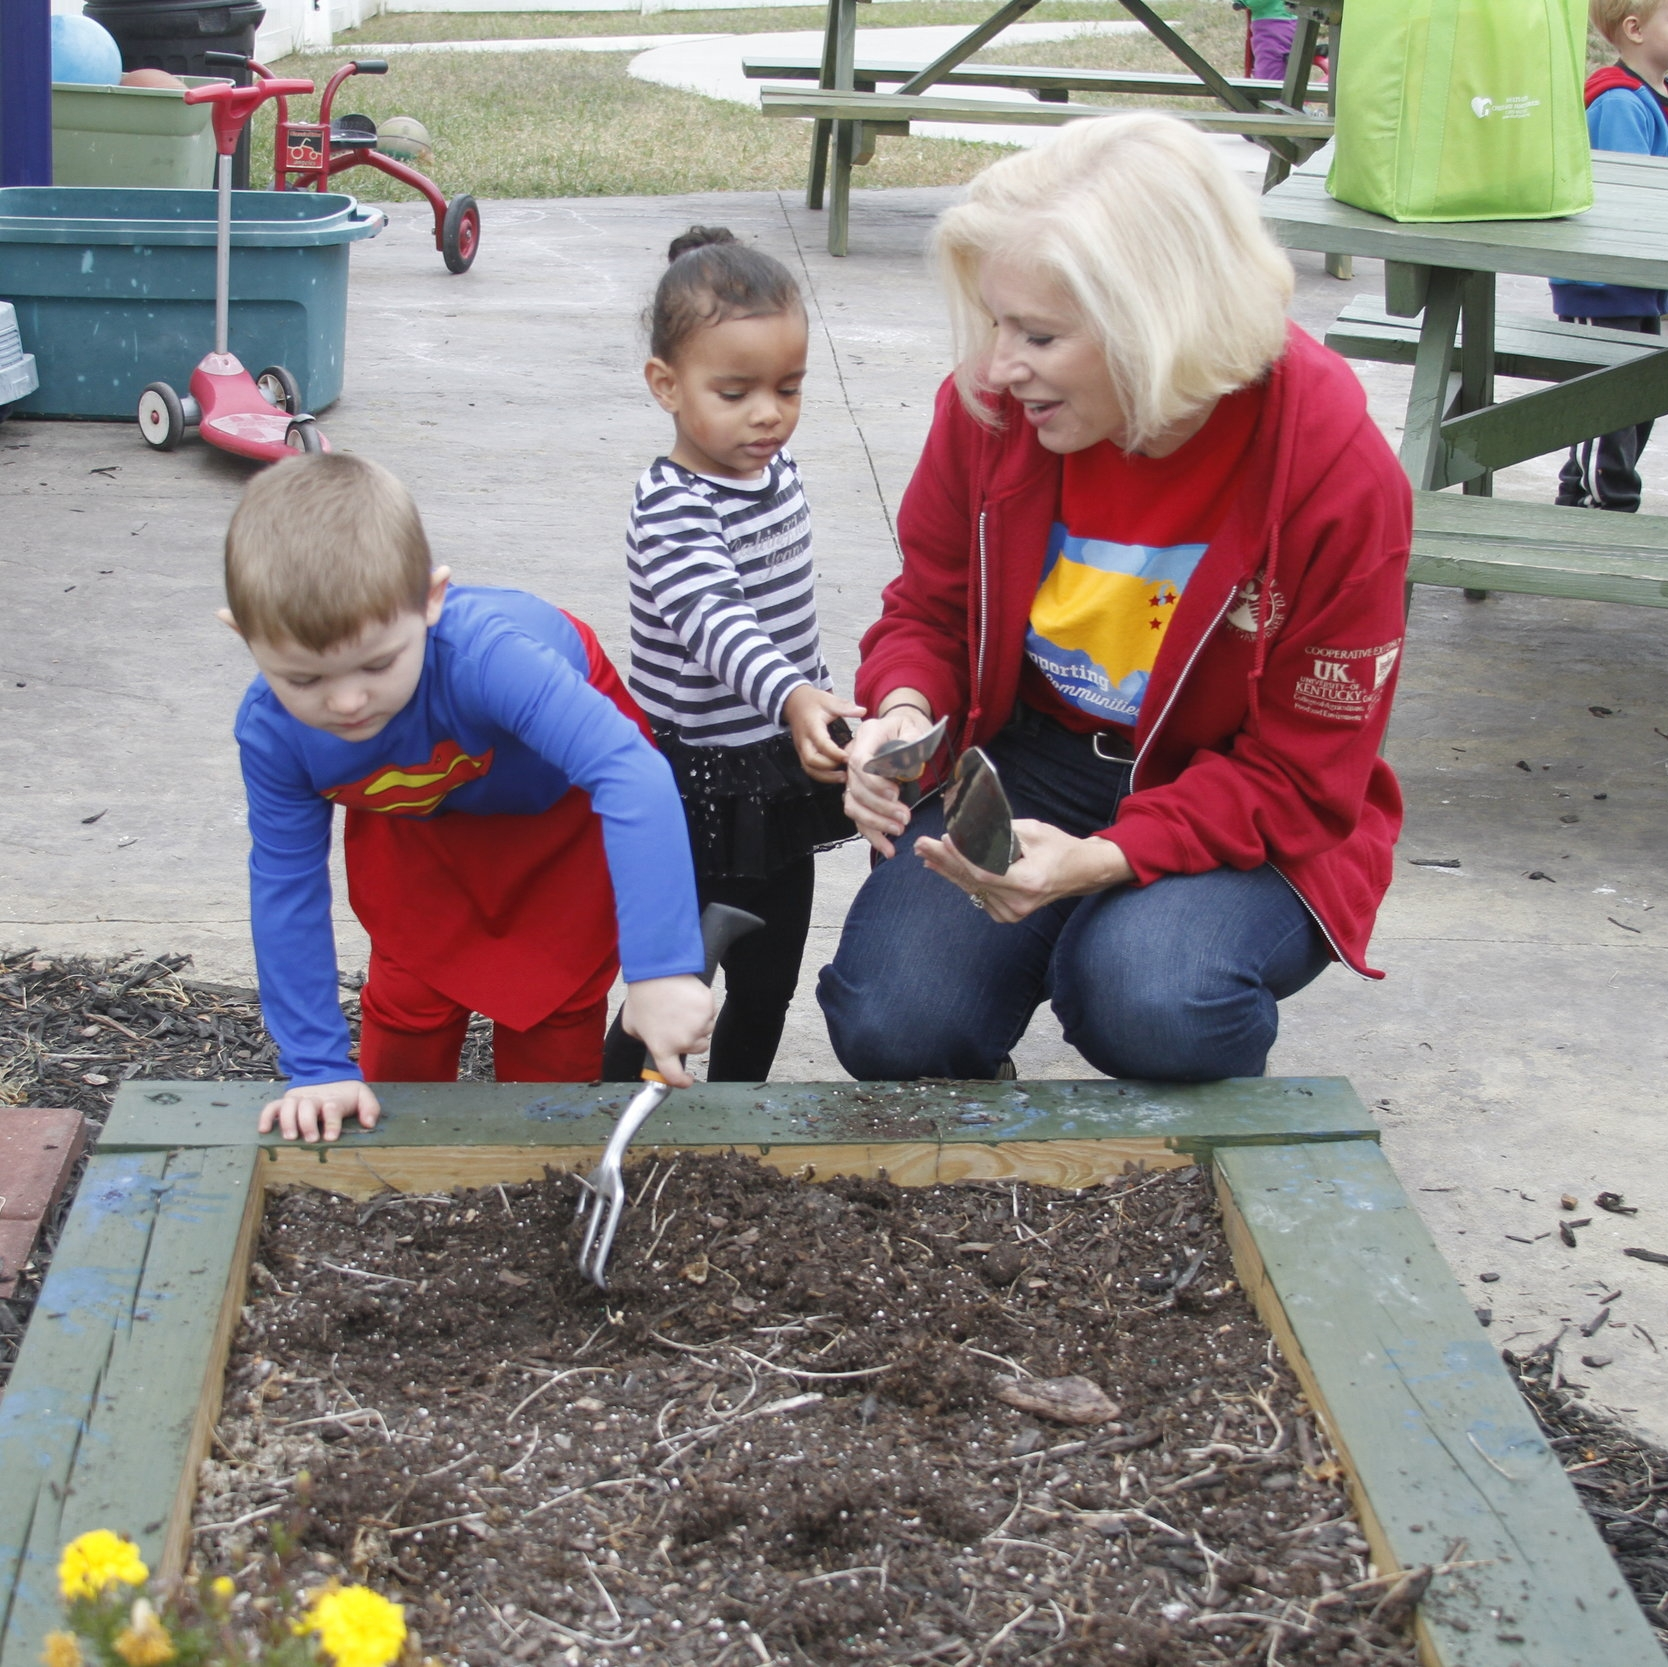 Mead Johnson Nutrition partners with Ark to provide maintenance, landscaping, volunteers for all sorts of tasks, planting vegetable gardens & providing nutrition lessons for children and so much more!